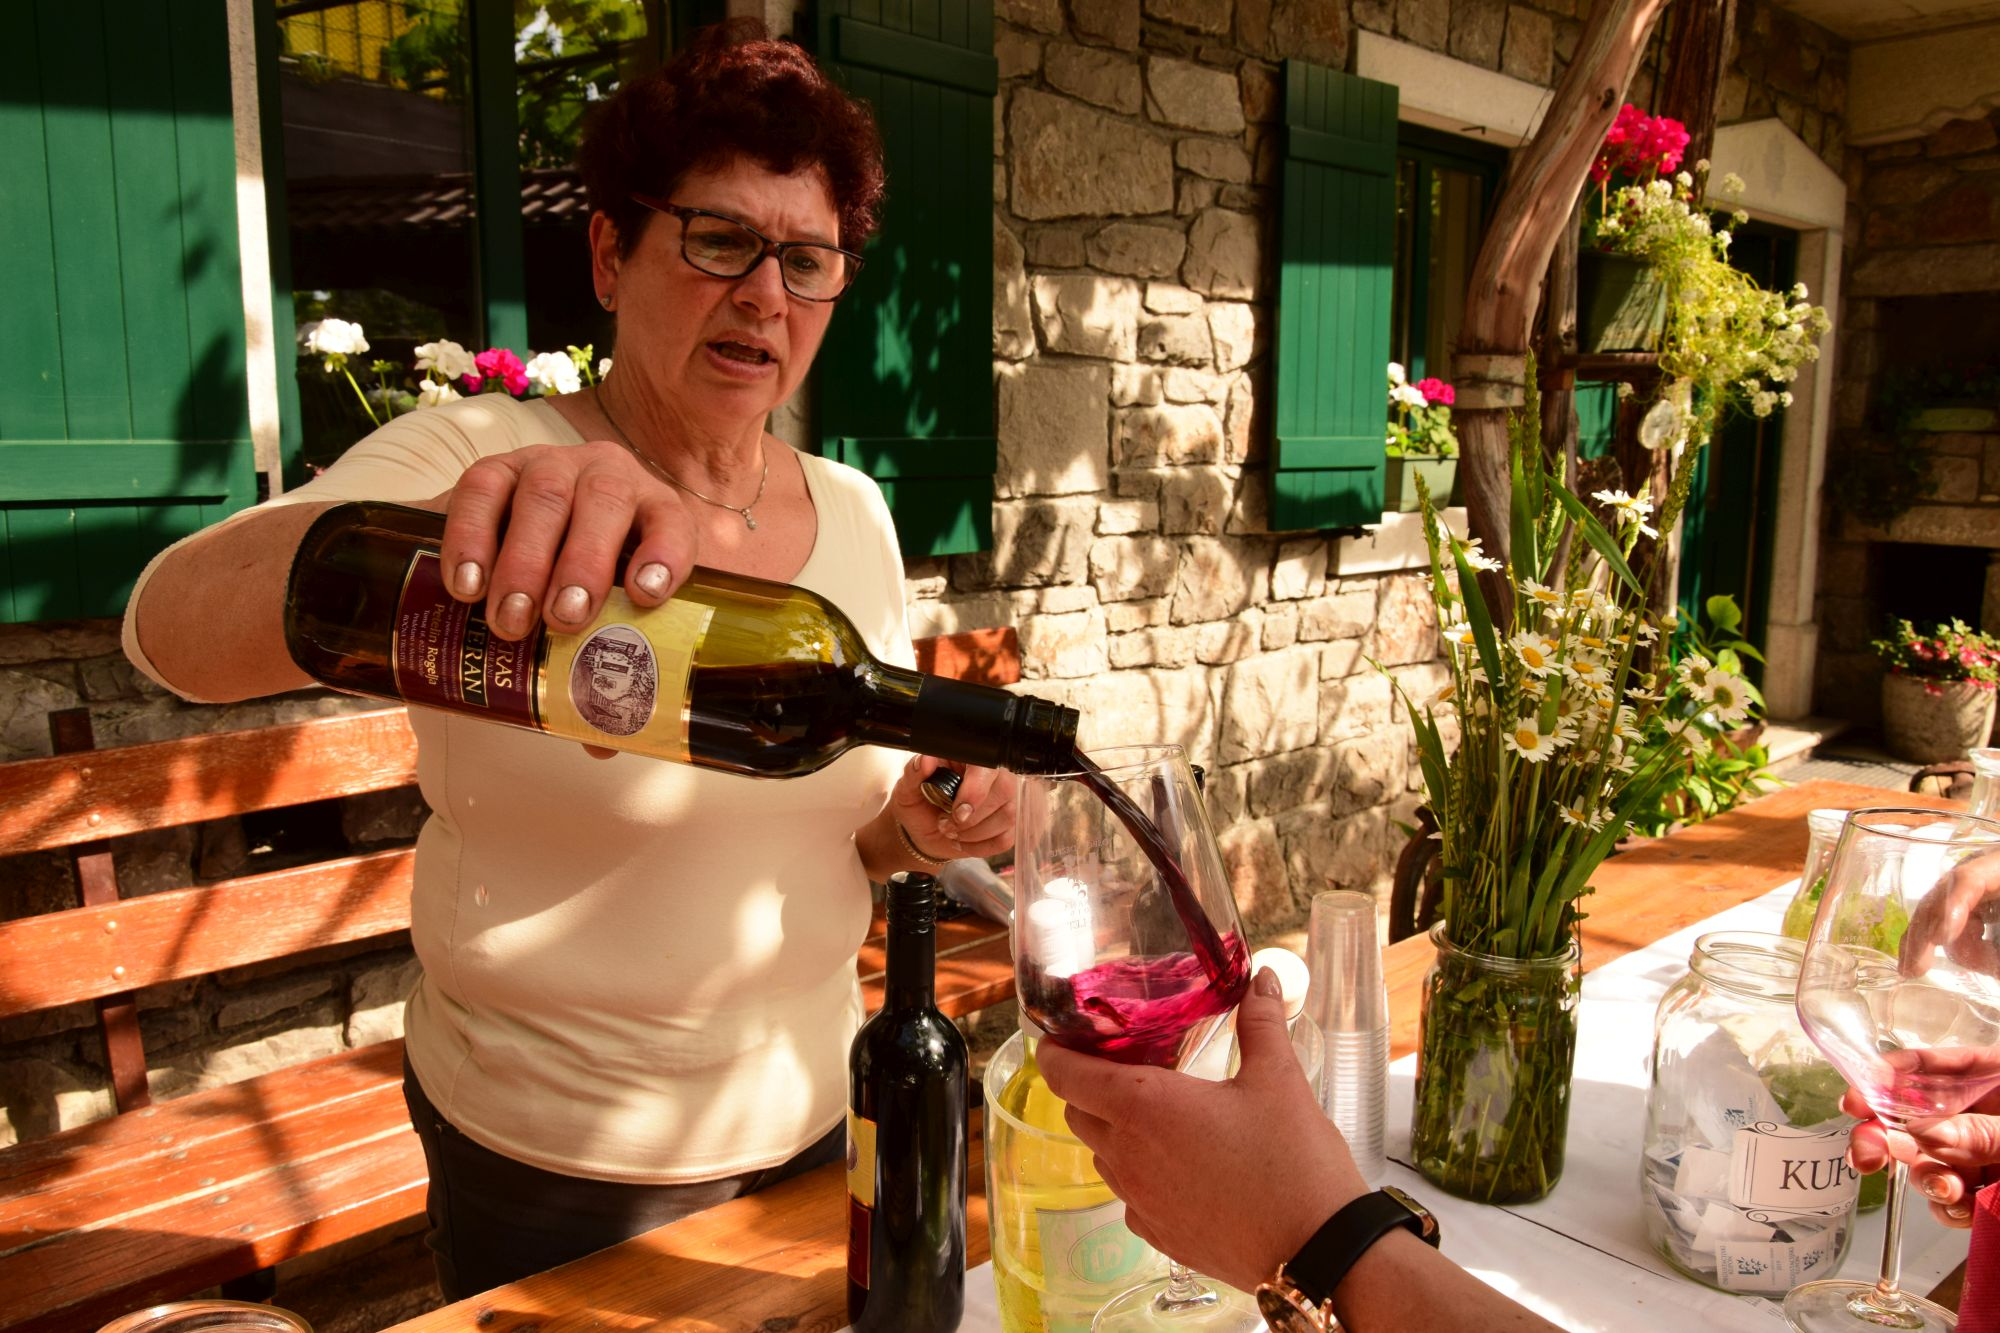 Winemaker serving a glass of wine to a wine festival patron